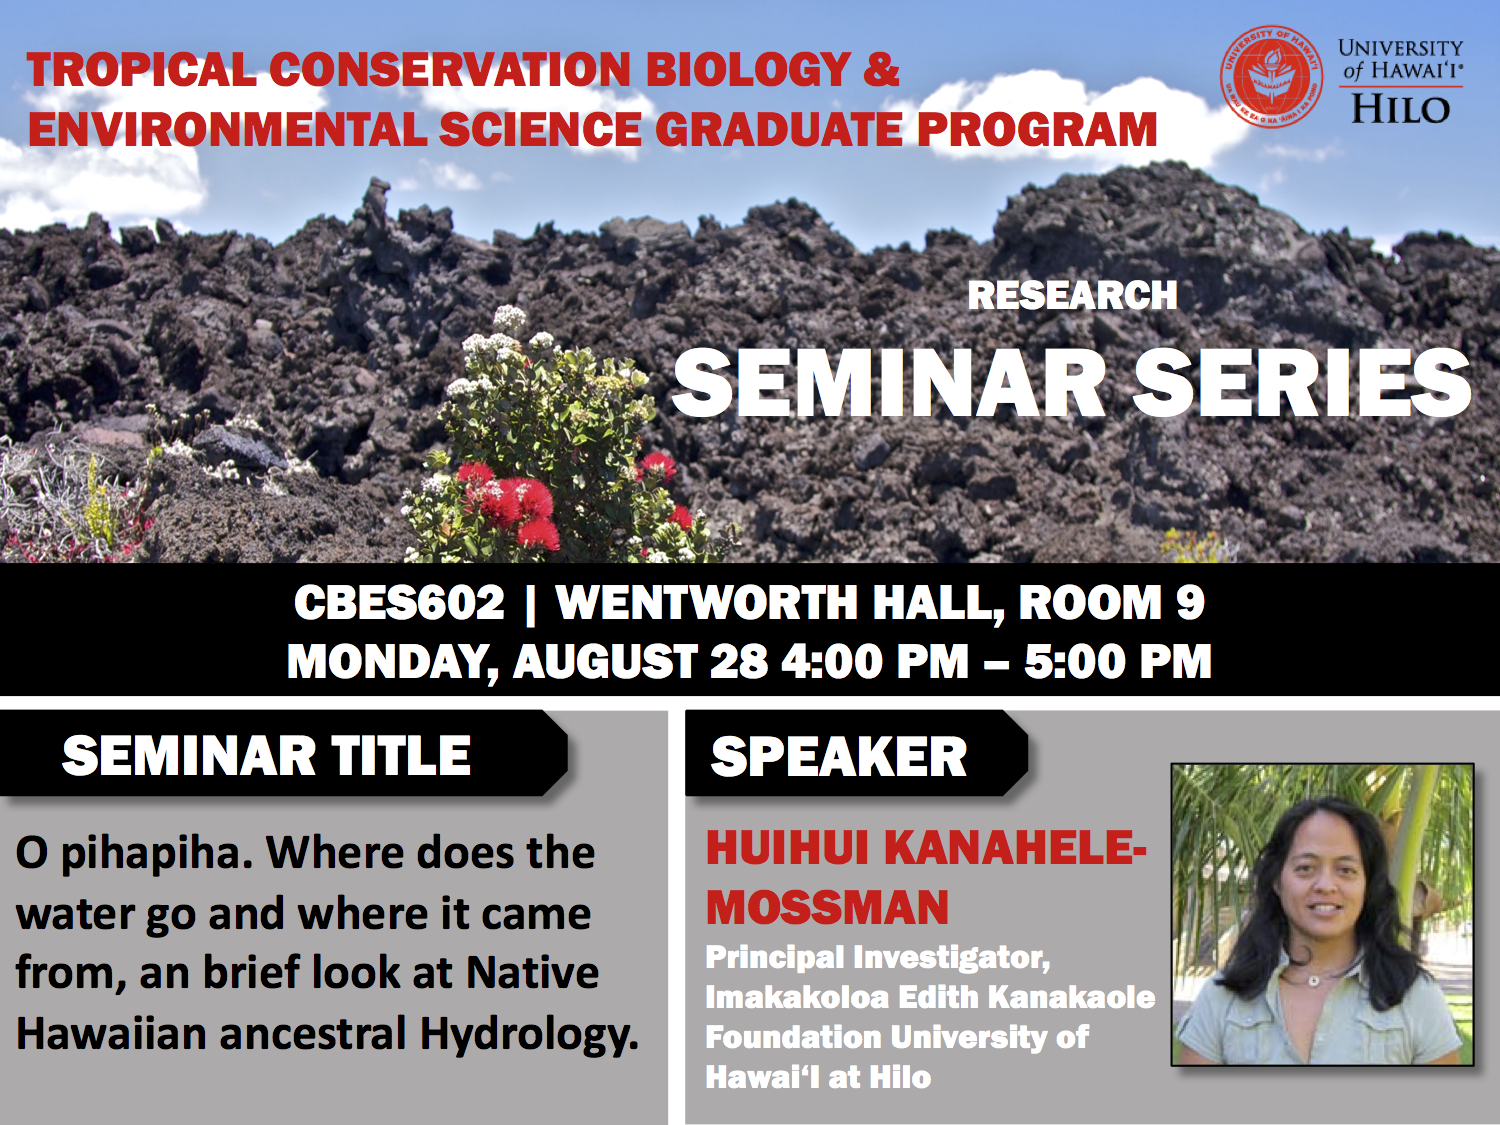 TCBES seminar speaker Huihui Kanahele-Mossman from Imakakoloa Edith Kanakaole Foundation University of Hawaiʻi at Hilo, August 28th in Wentworth 9 from 4 to 5pm on O pihapiha: where does the water go and where does it come from, a brief look at native Hawaiian ancestral hydrology